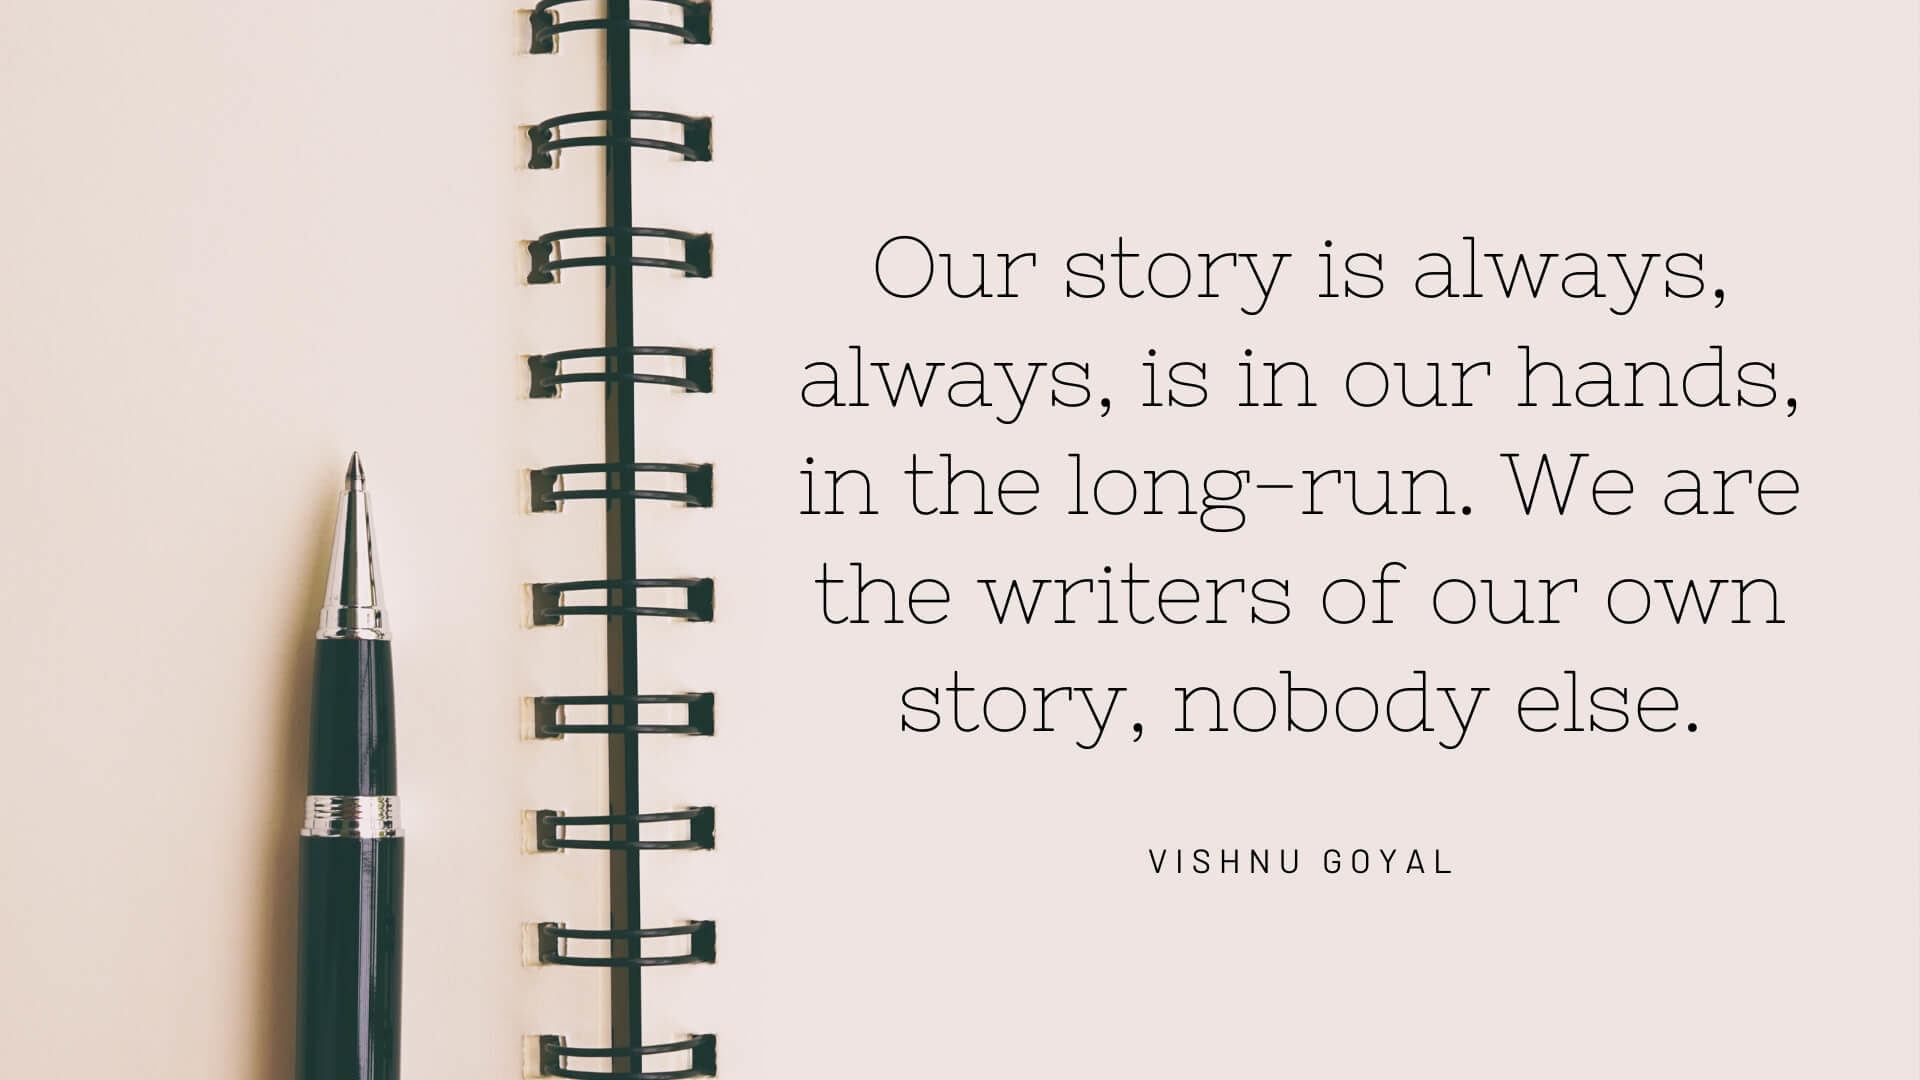 Our story is always, always, is in our hands, in the long-run. We are the writers of our own story, nobody else.